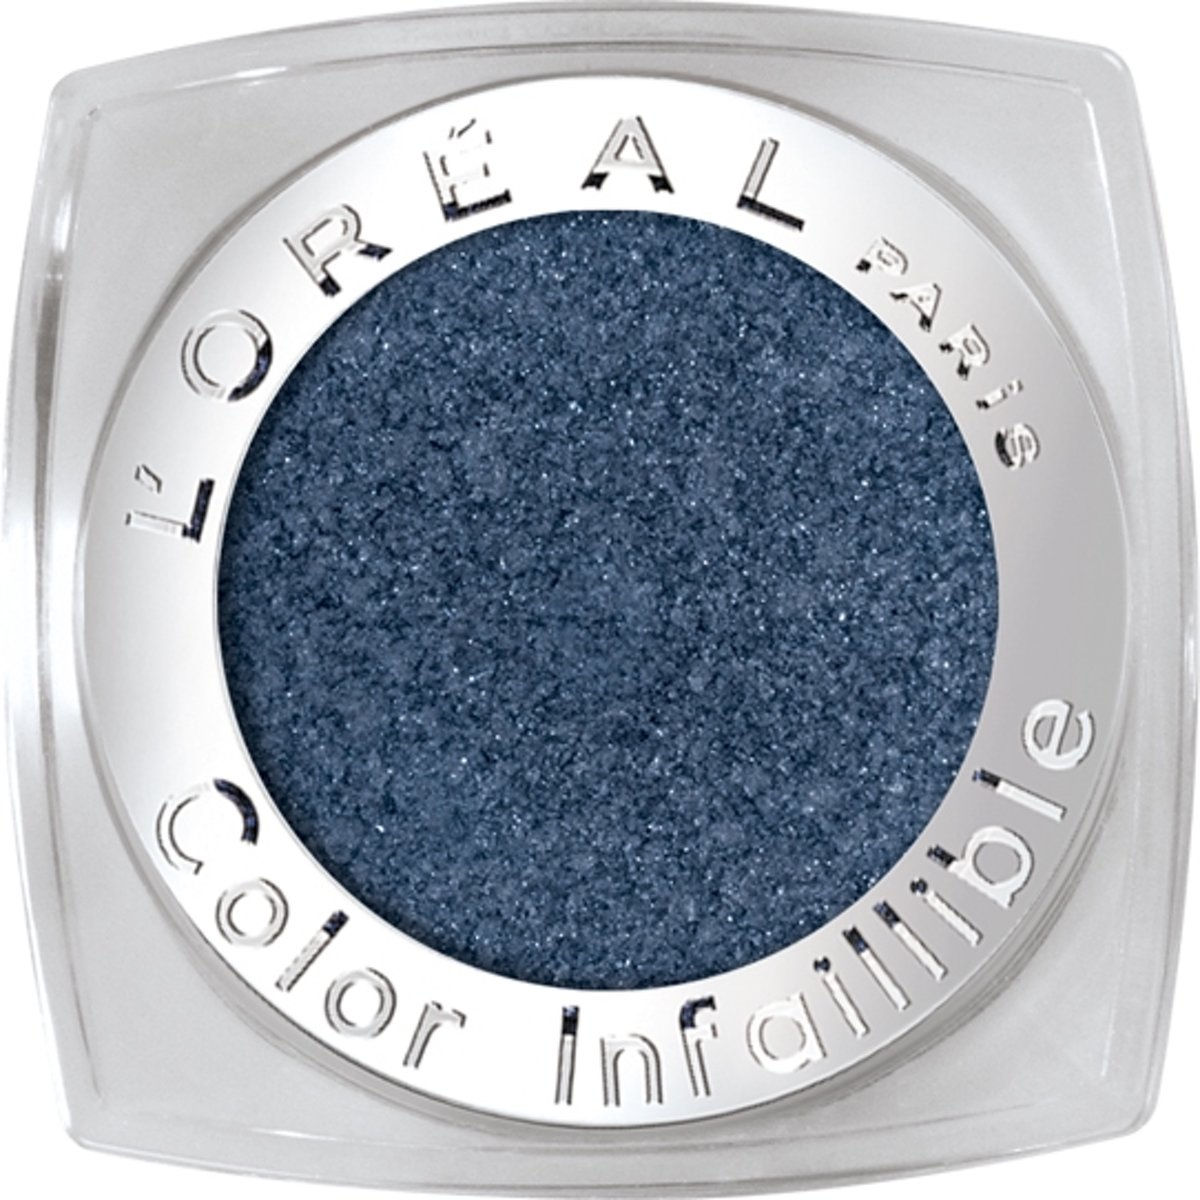 L'Oréal Paris Color Infallible - 006 All Night blue - Oogschaduw